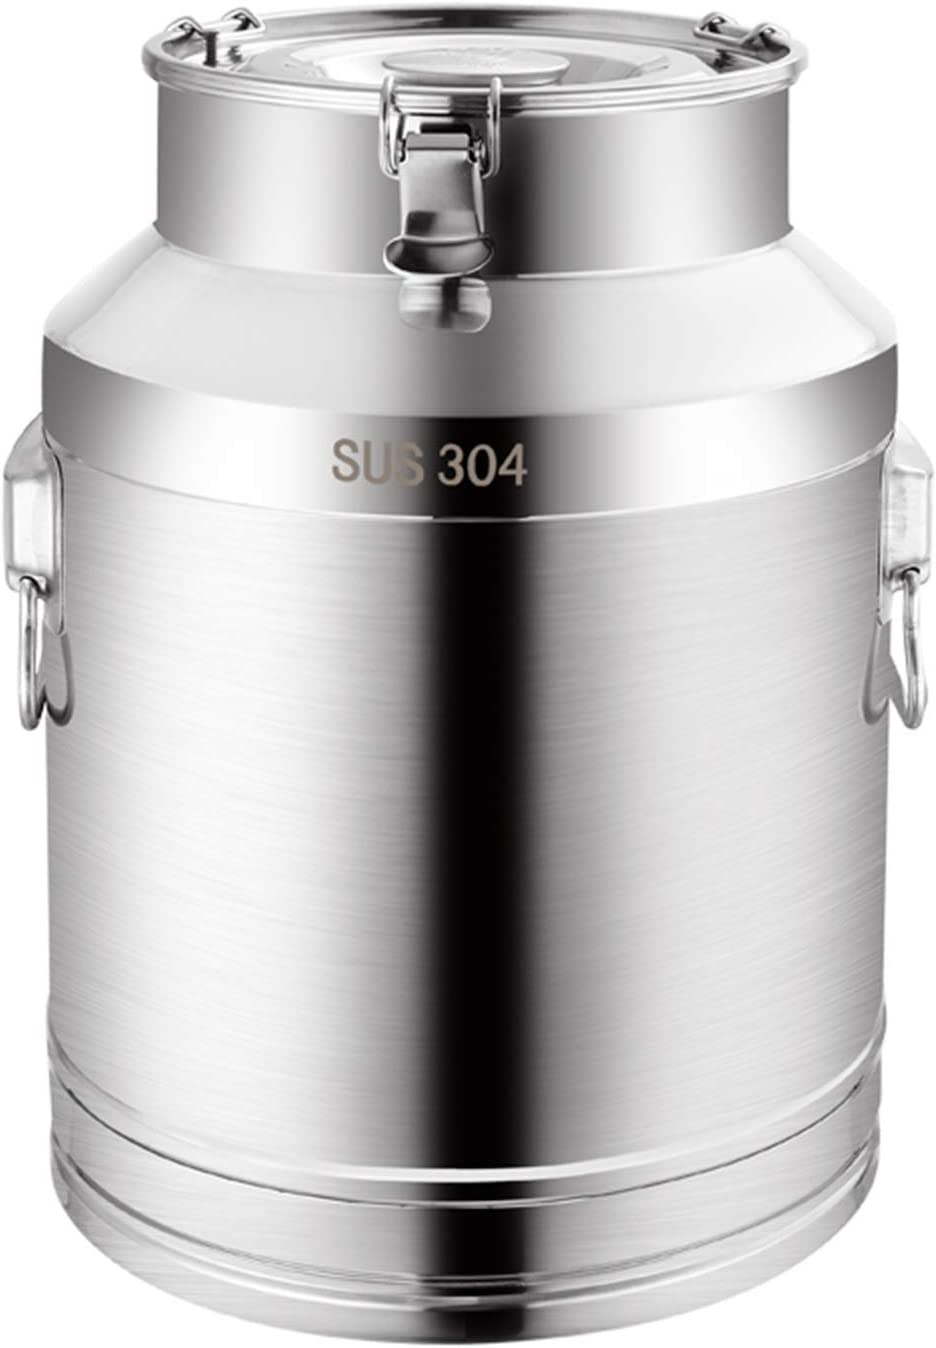 Stainless Steel Container Milk for Selling Airtight Stor Production Food Mail order cheap